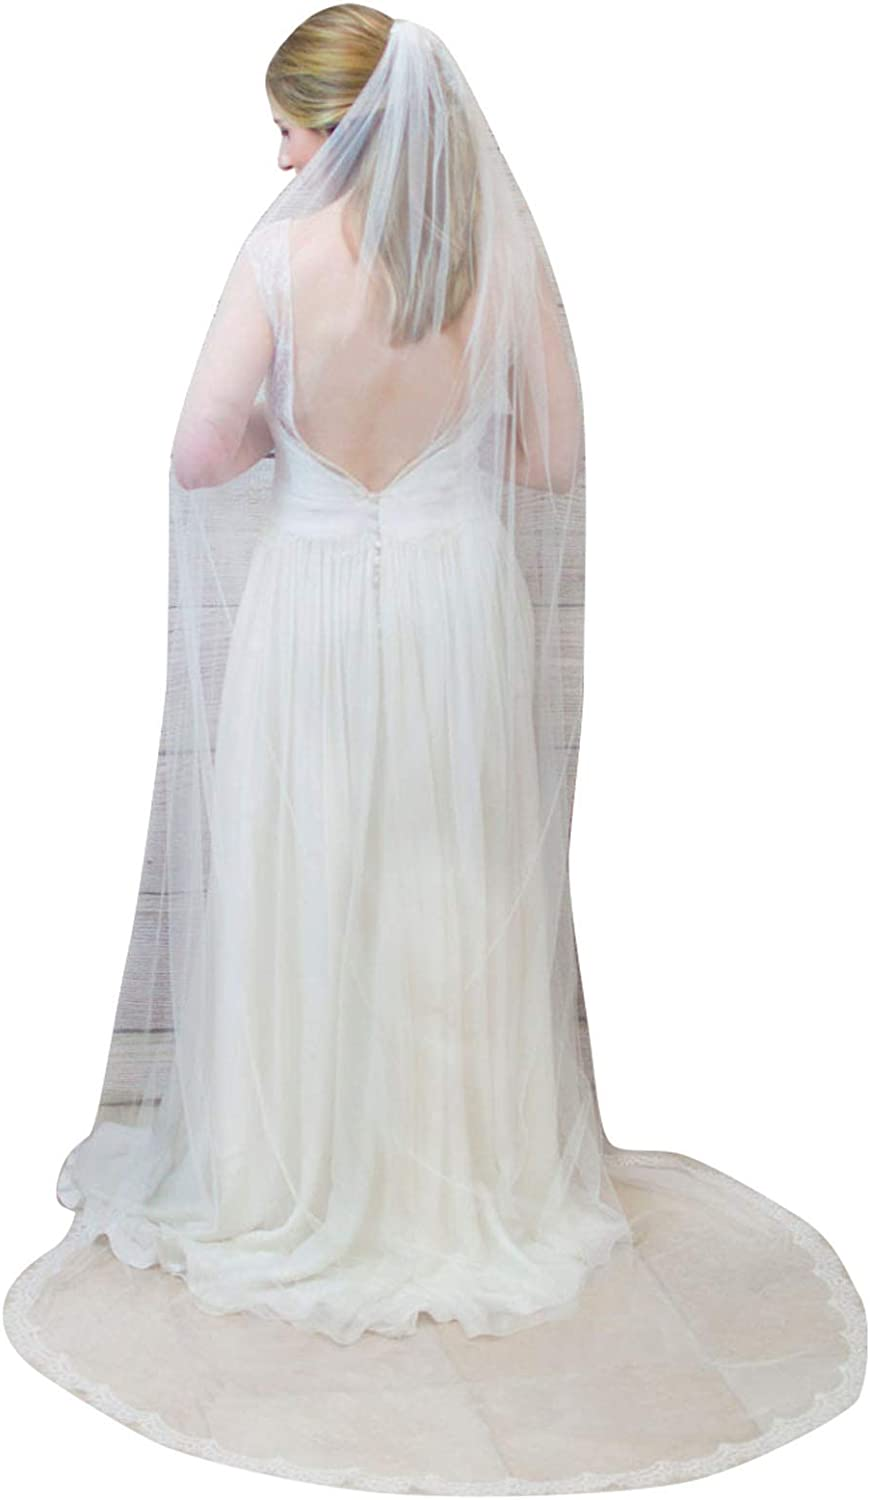 Lace Wedding Veils 1 Tier Cathedral Ivory Elegant Bridal Accessories with Comb